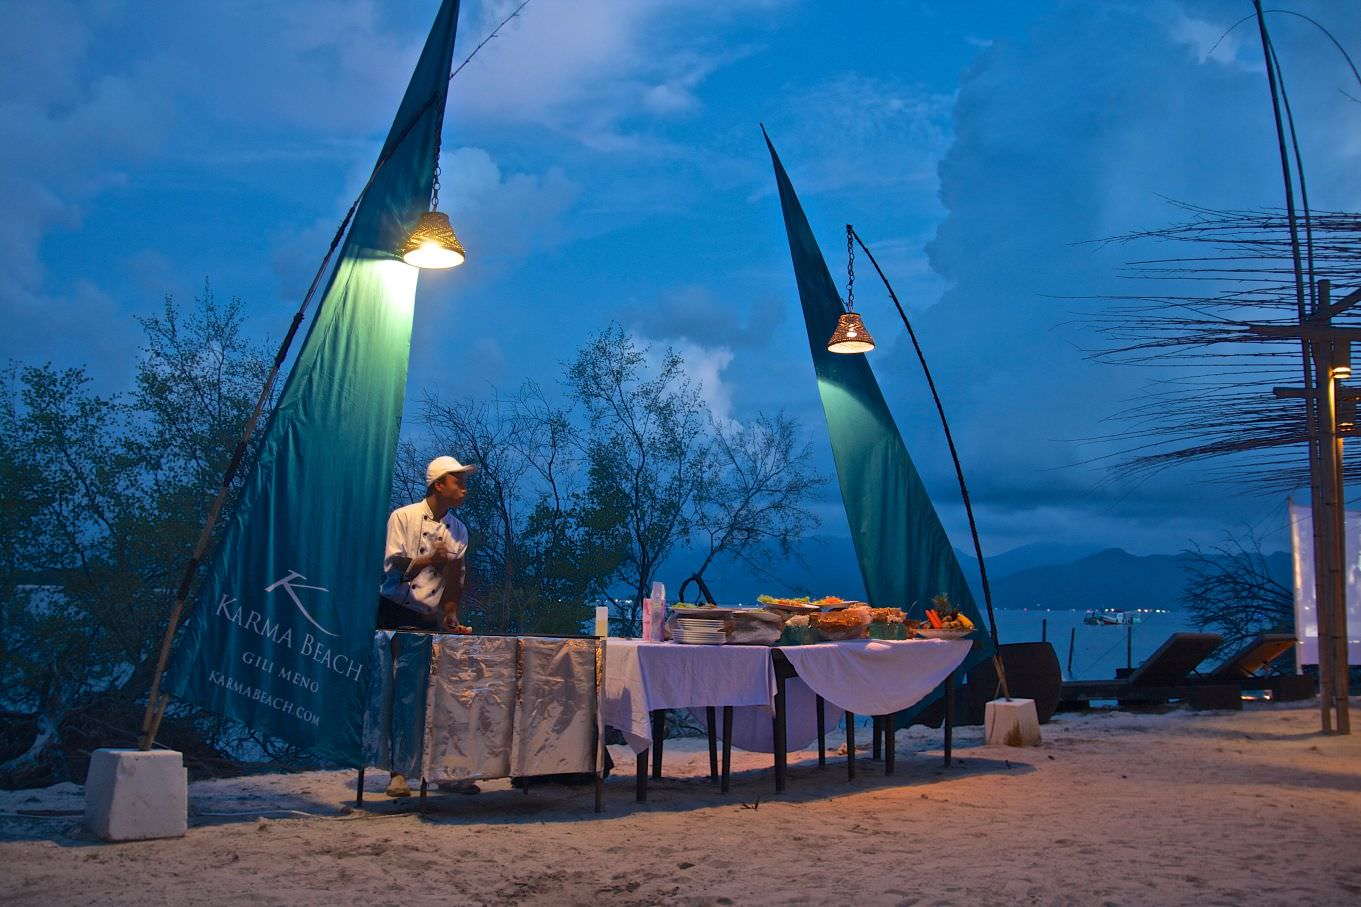 Best Hotels in Gili Islands grill and barbecue cuisine